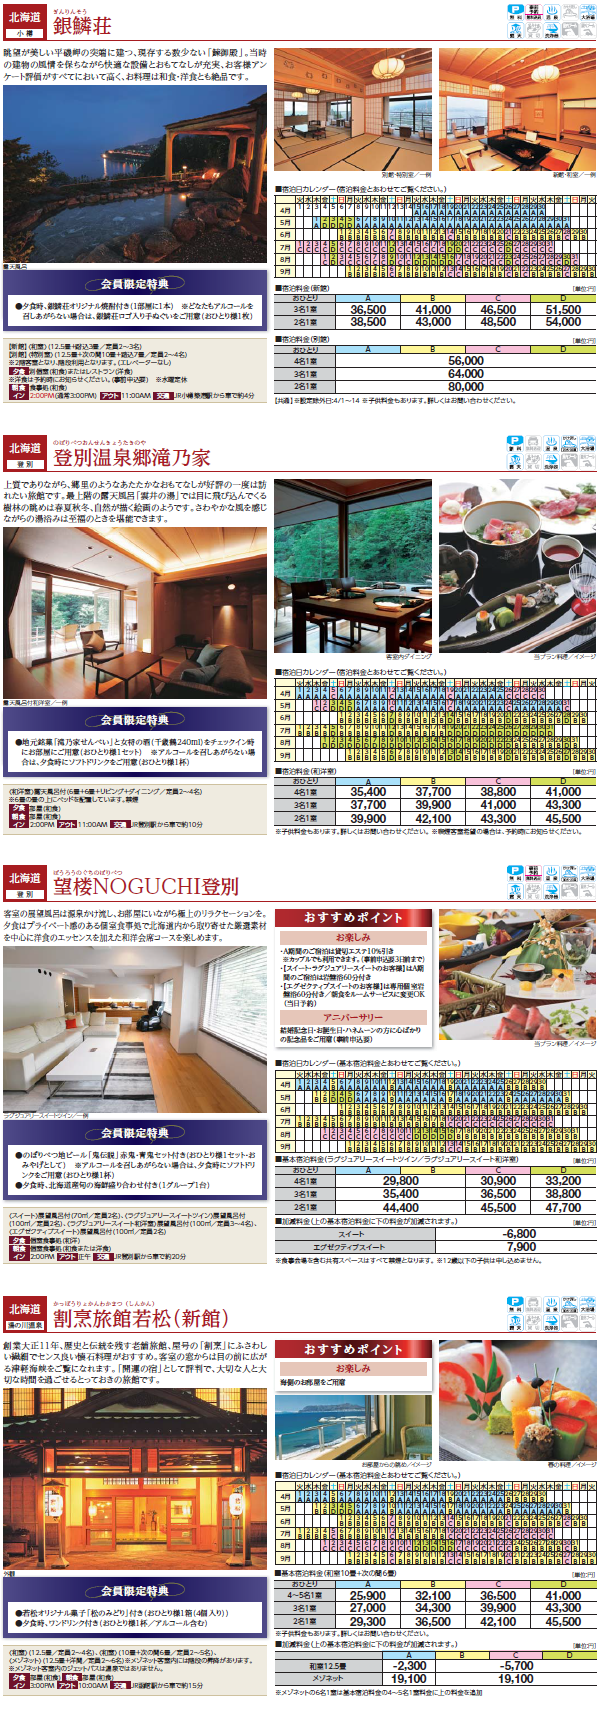 stay_plan_ryokan_1403_1